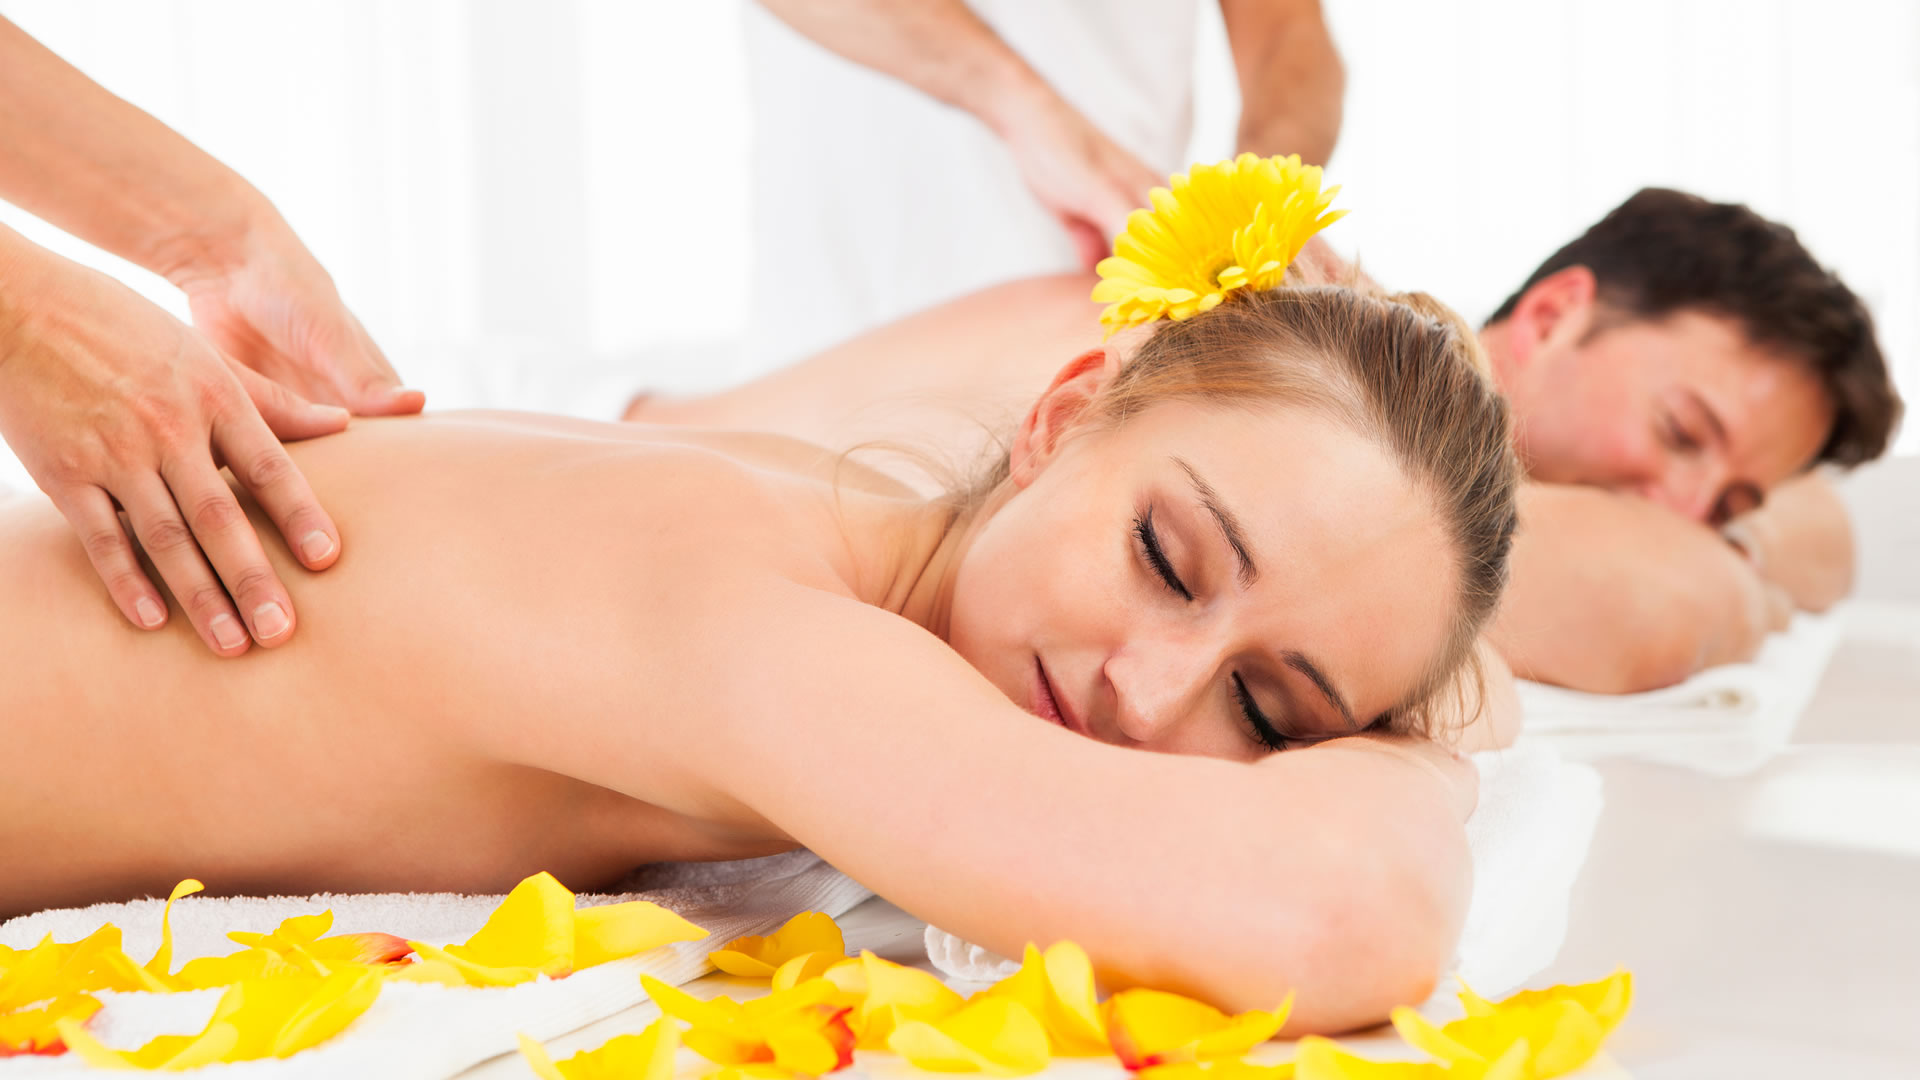 Couples Massage Los Angeles, Dtox Day Spa